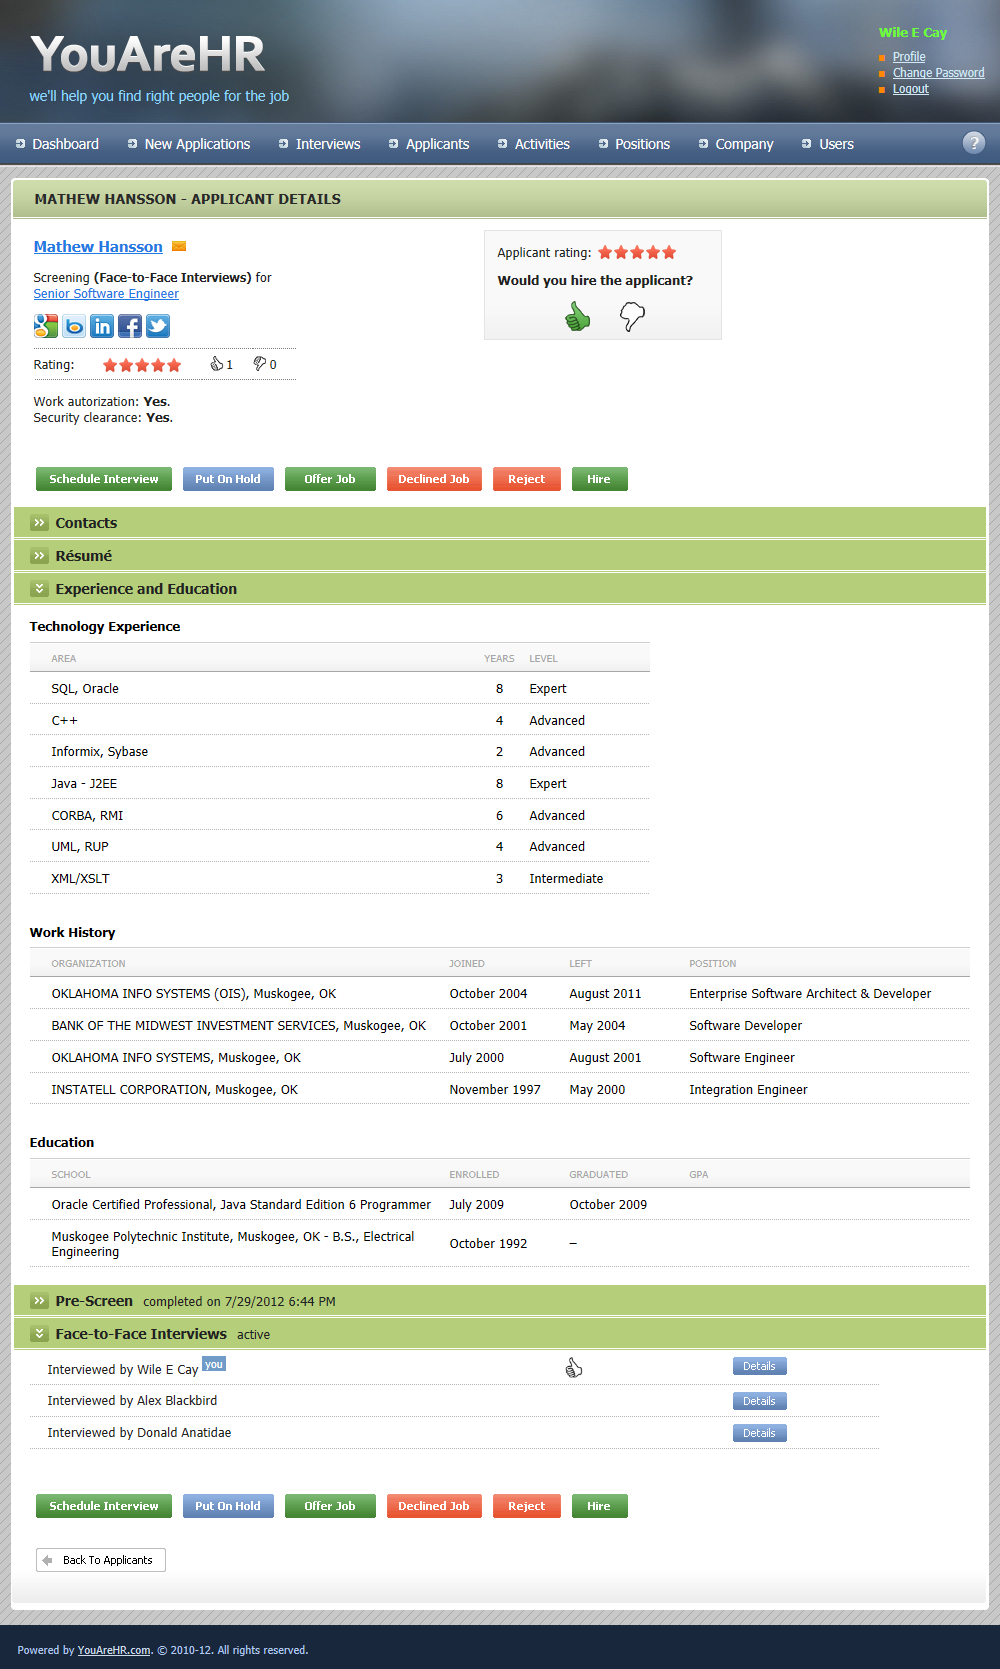 com resume tracking and management software combines each applicant